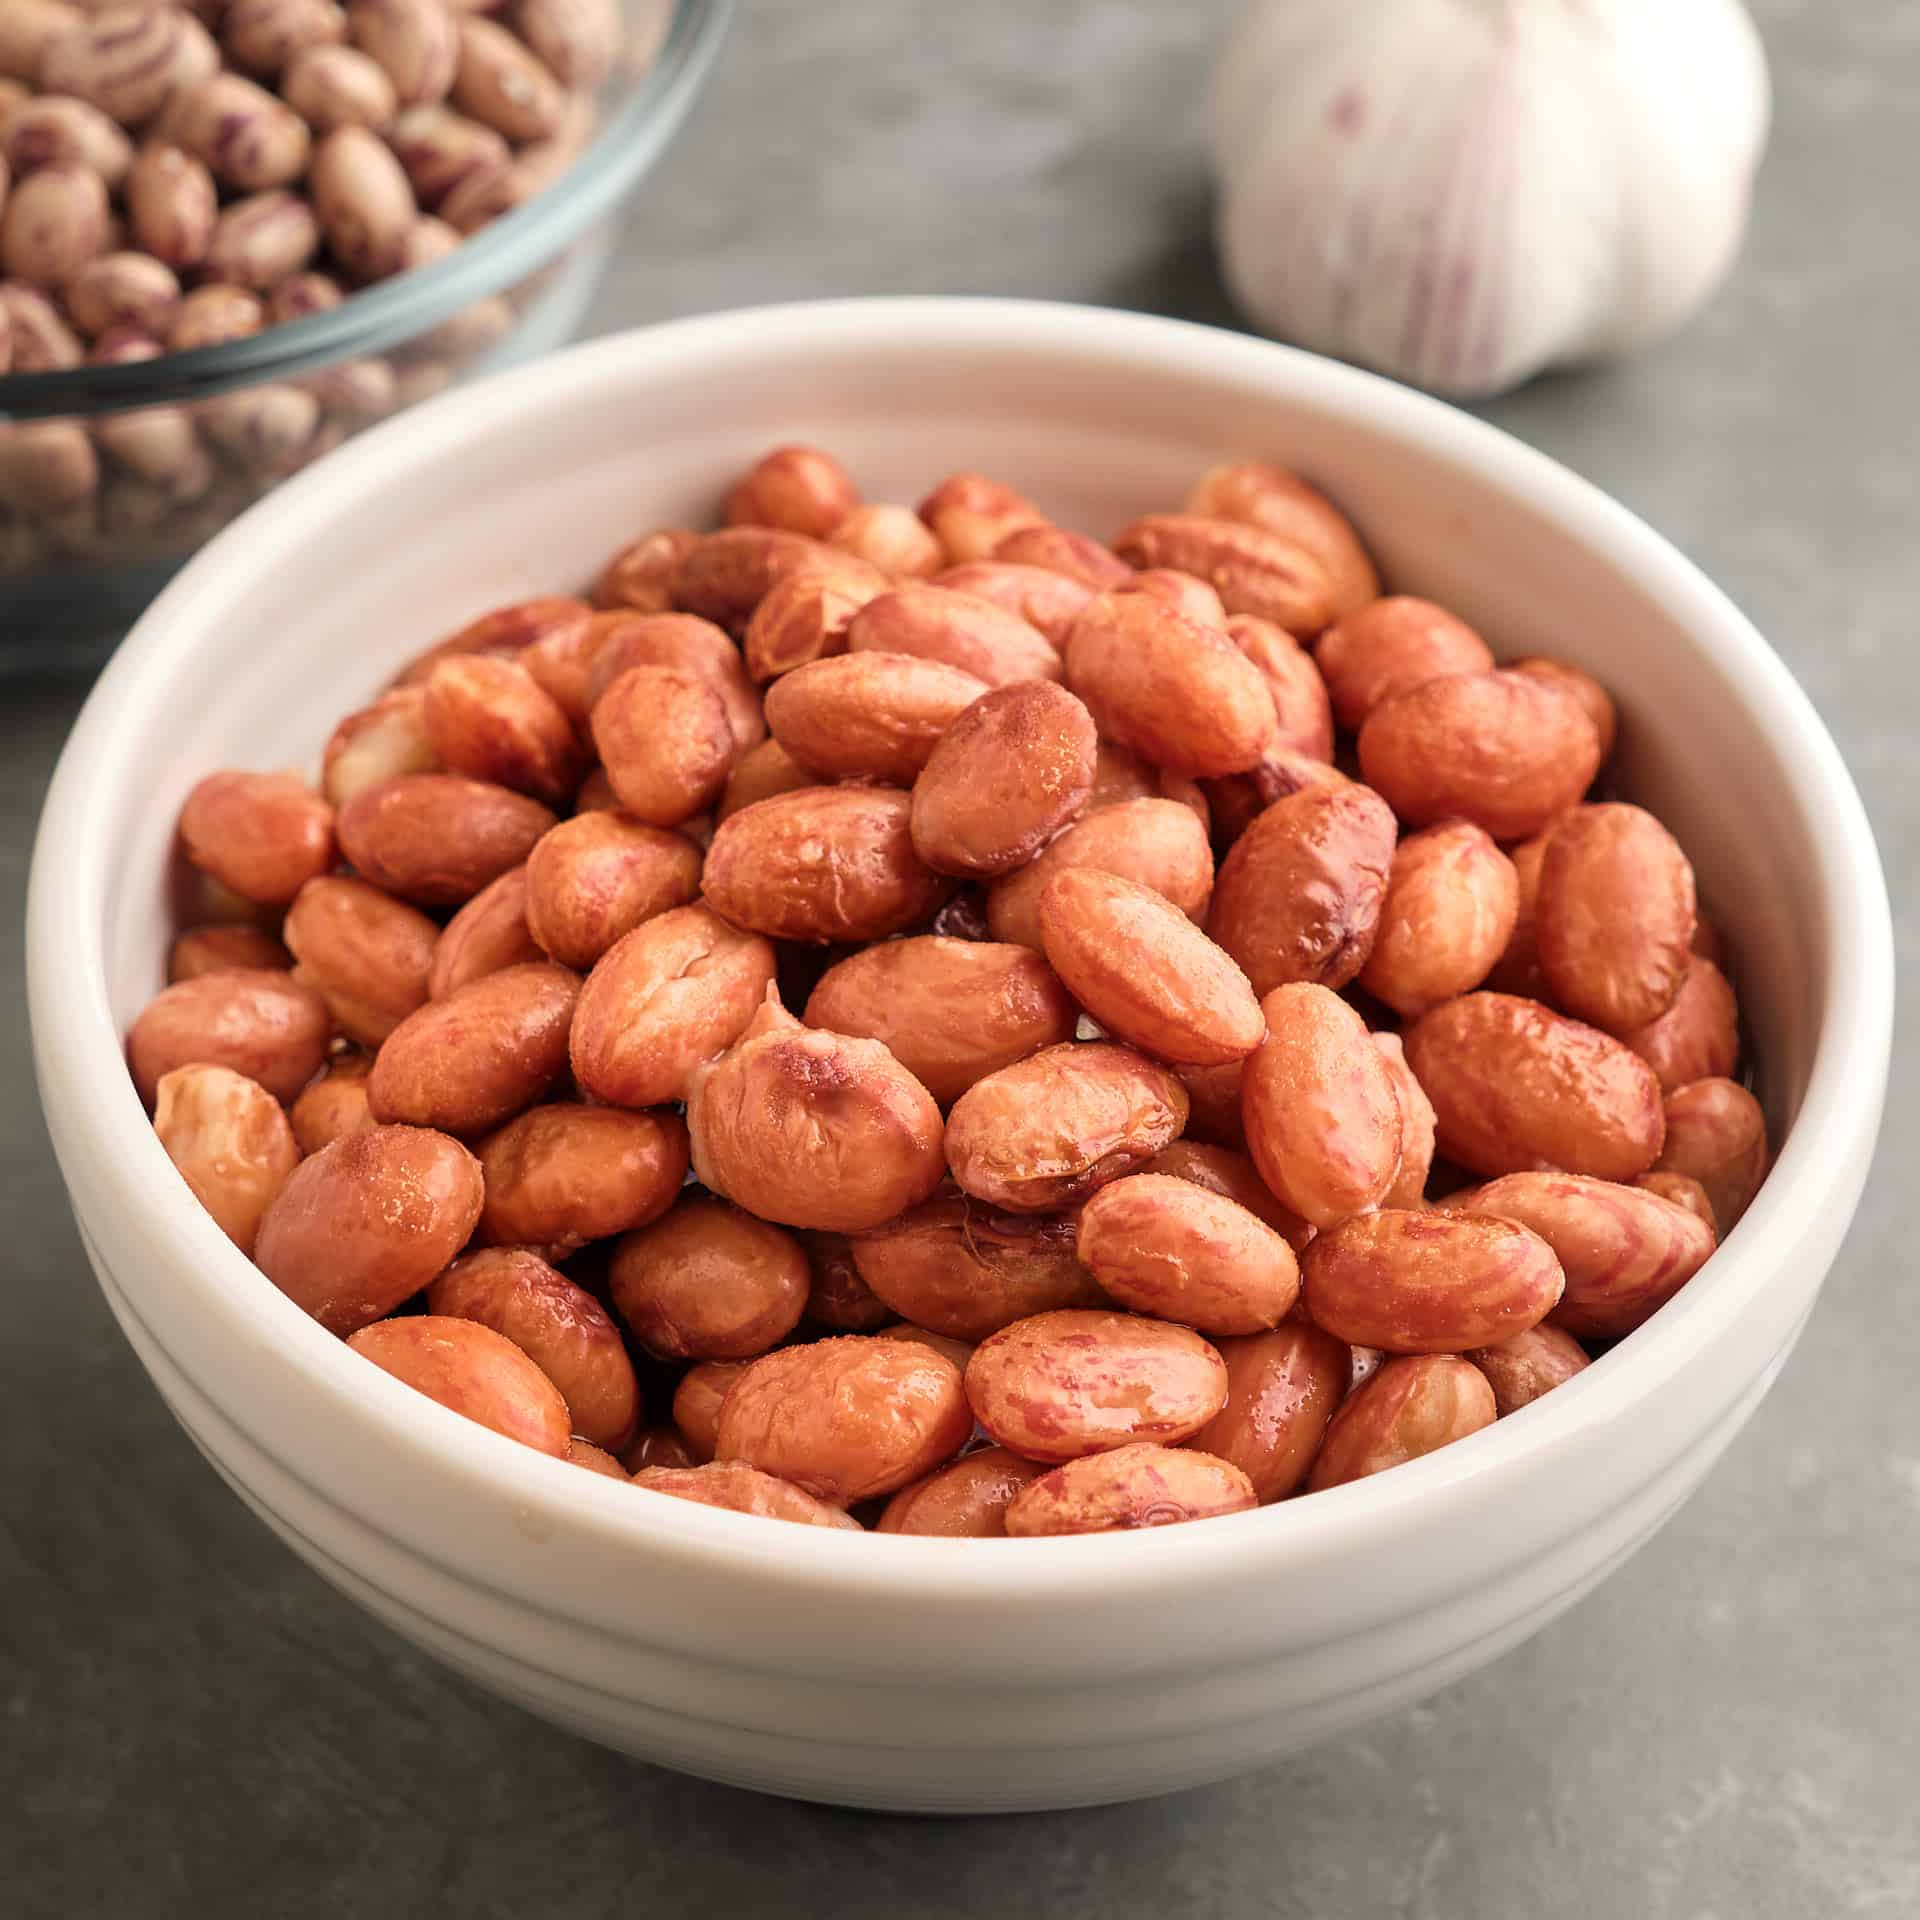 A bowl of cranberry beans, with a head of garlic and another bowl of dried cranberry beans in the background